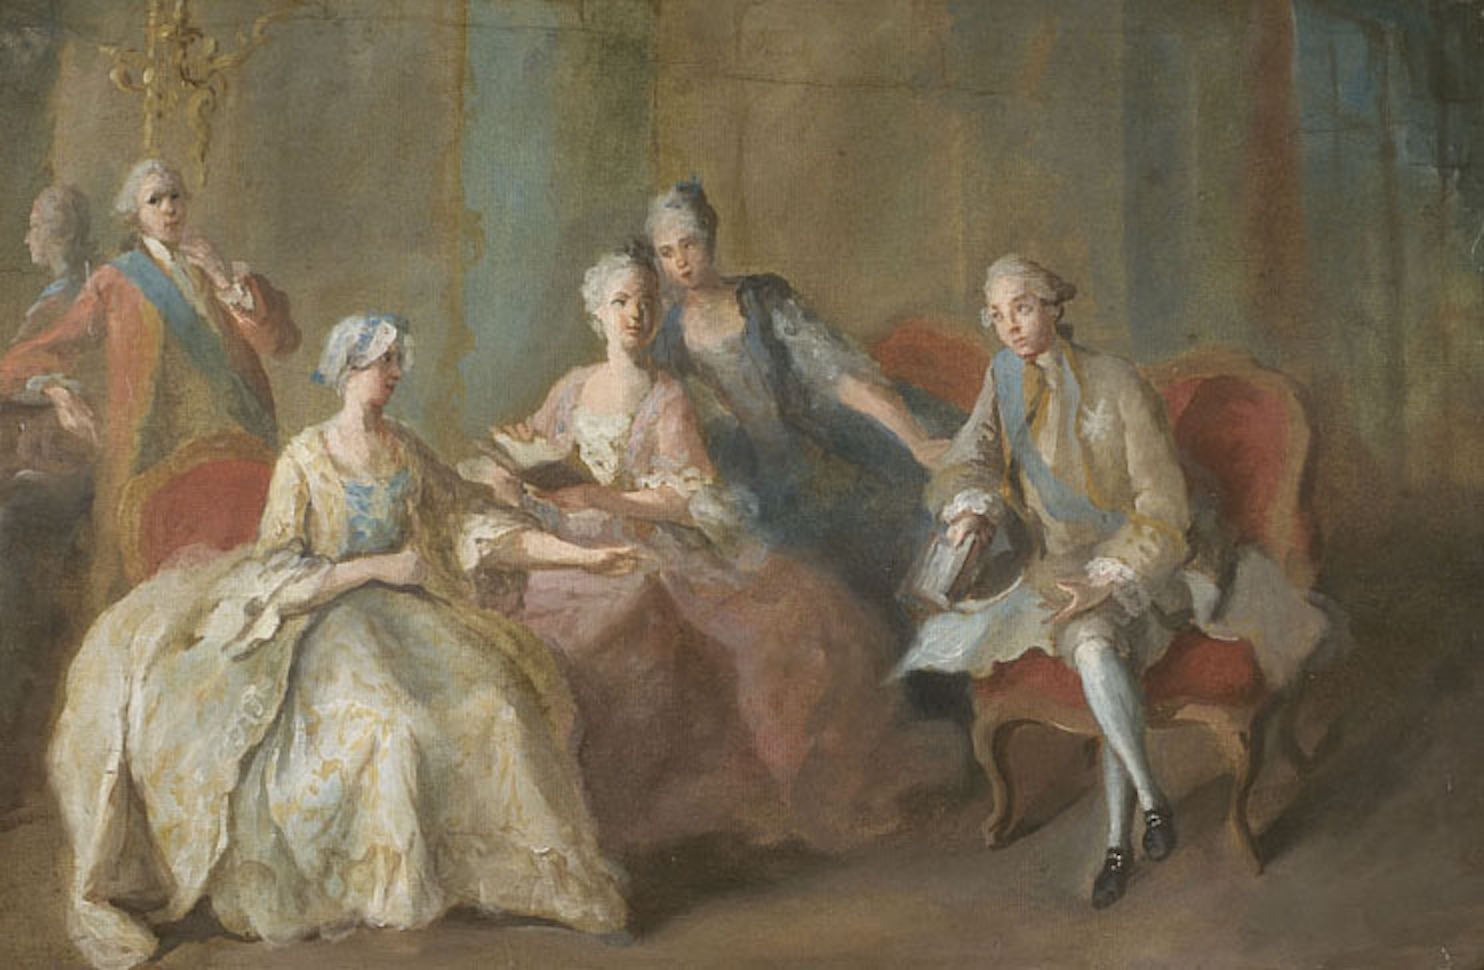 1767 Family of the Duke of Penthièvre by Jean-Baptiste Charpentier (Château  de Sceaux - Sceaux, Hauts-de-Seine France)